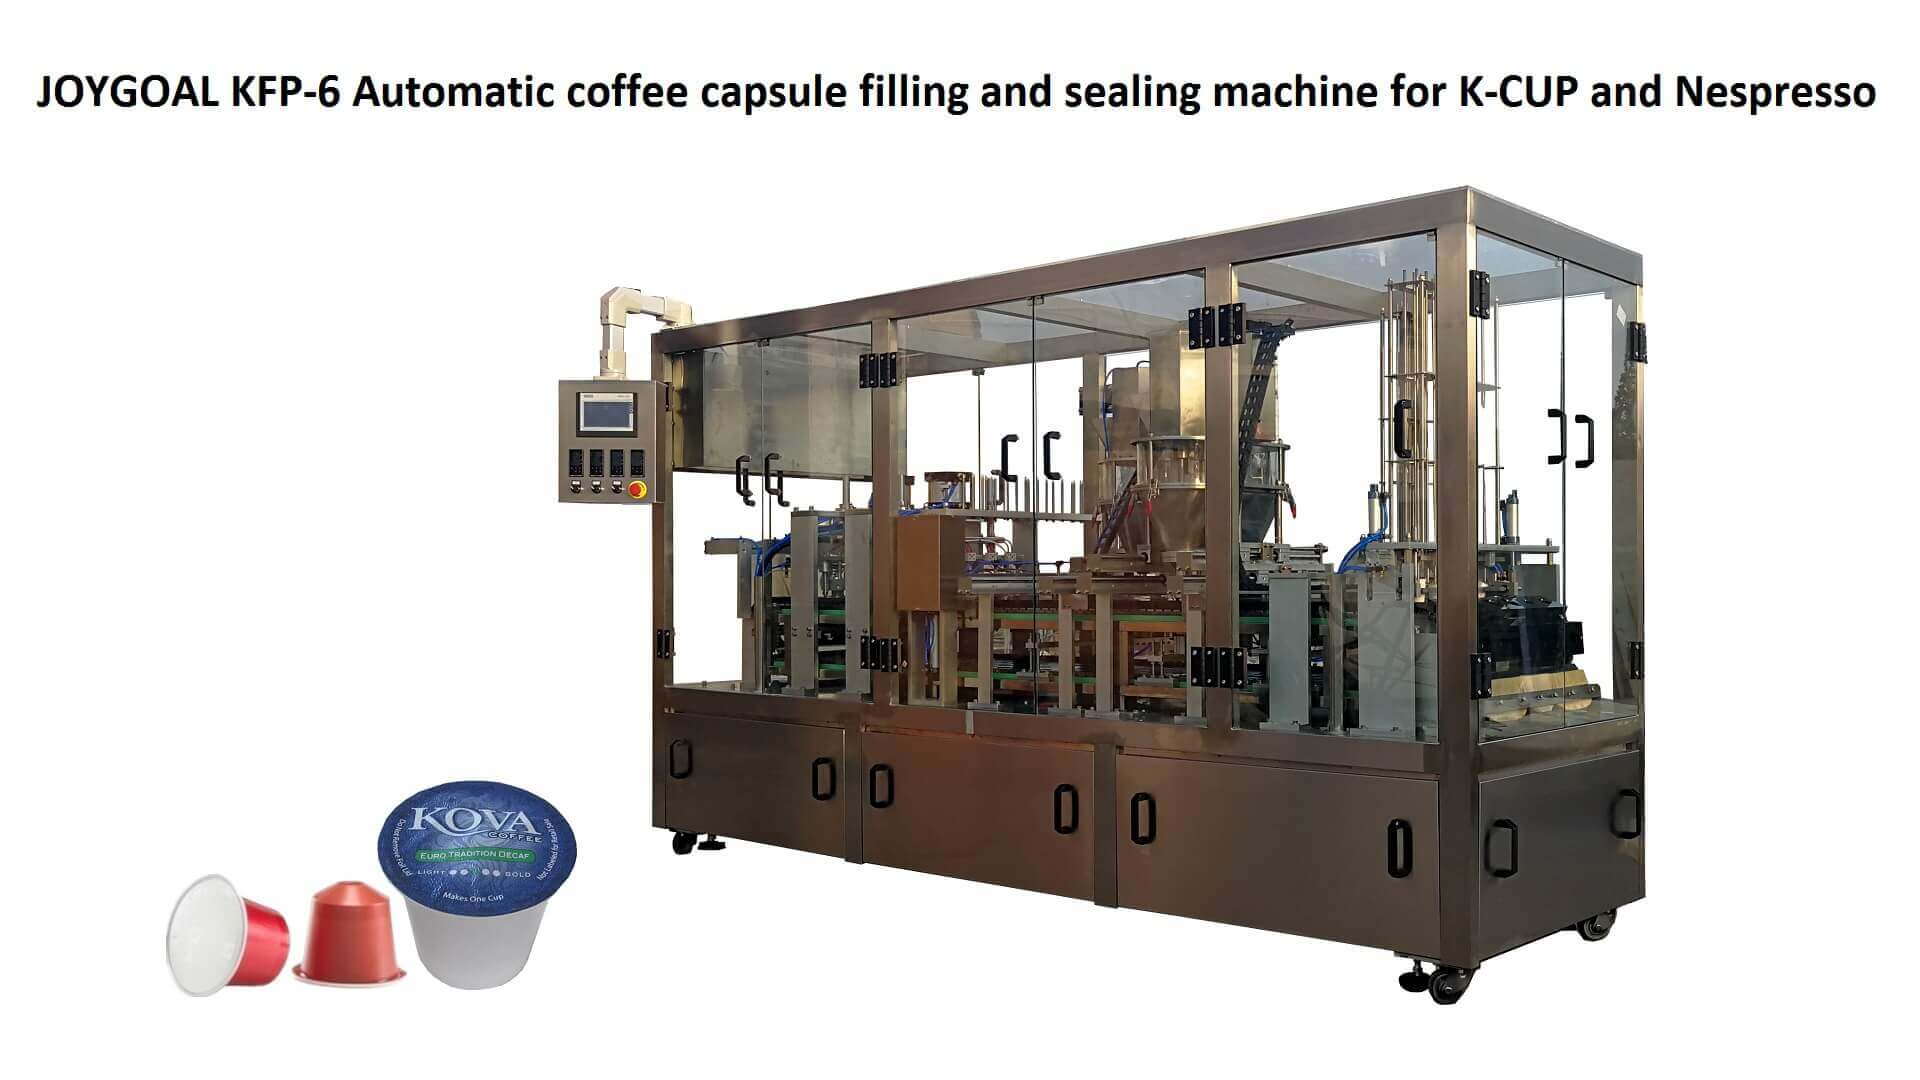 August 12, 2019,JOYGOAL KFP-6 Automatic coffee capsule filling and sealing machi